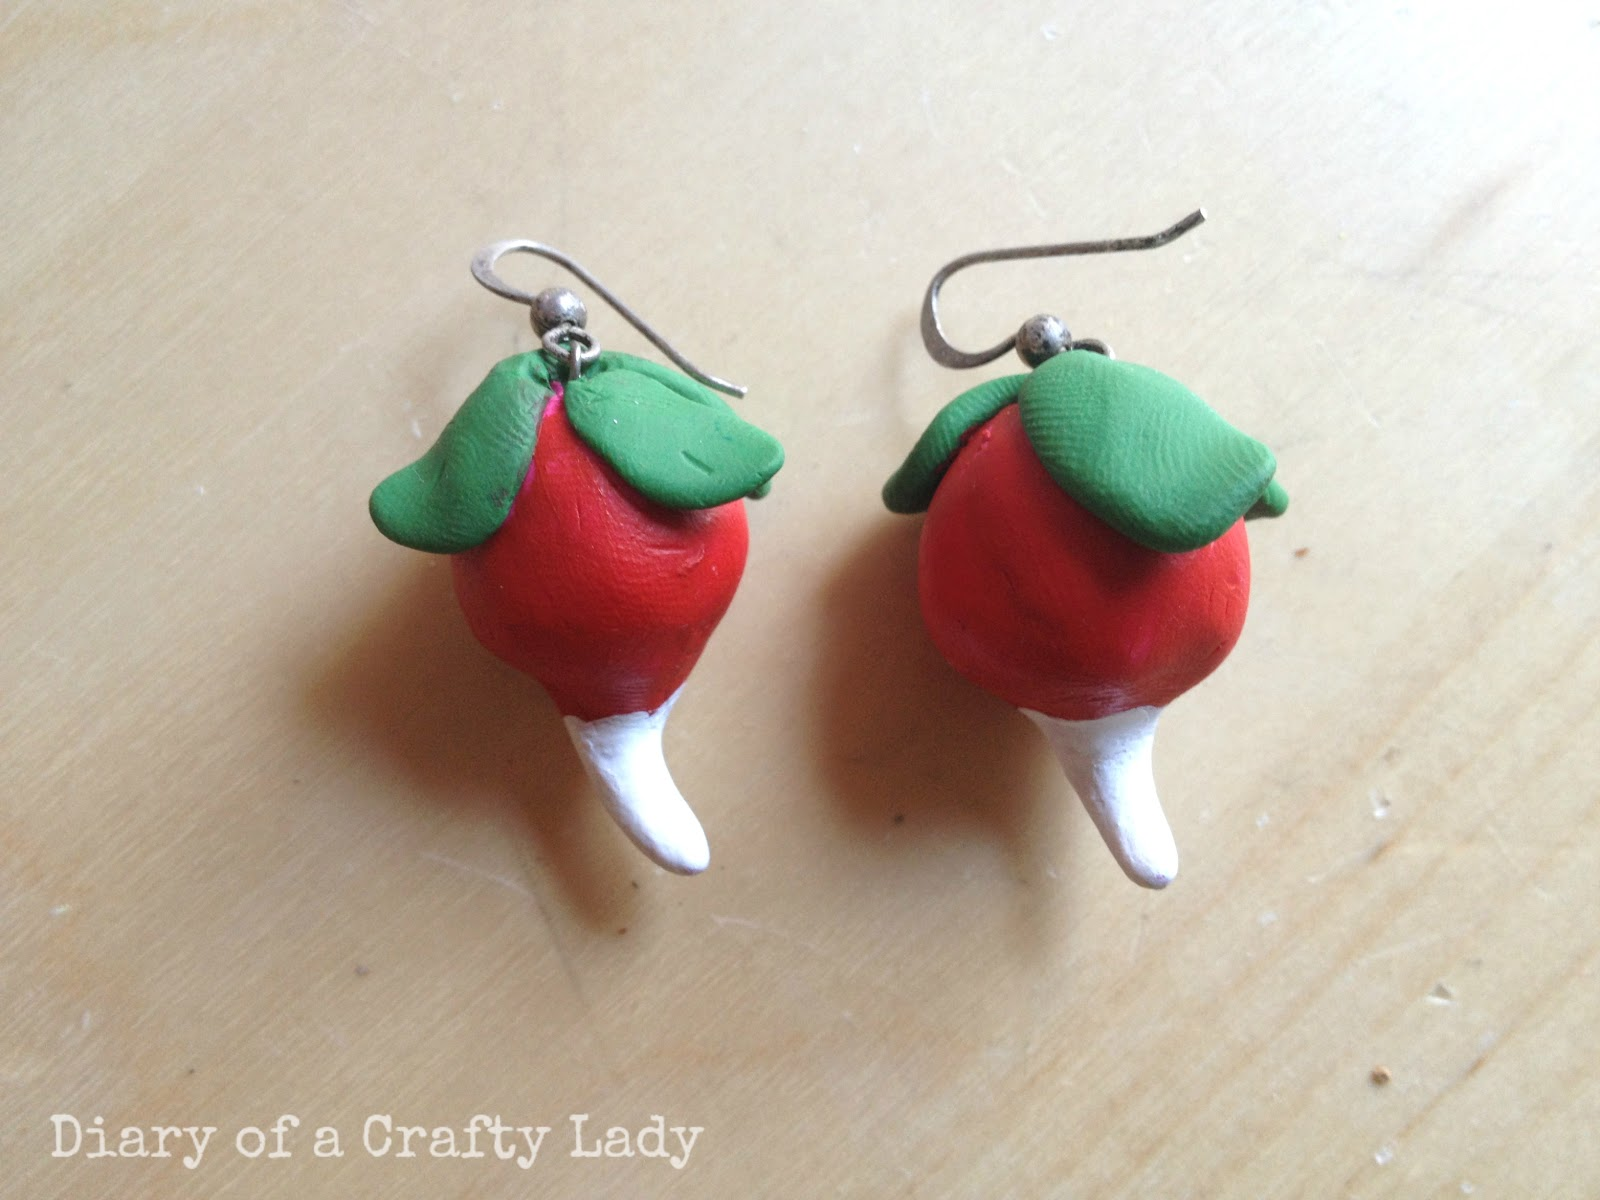 radish earrings diary of a crafty lovegood costume from harry 3971